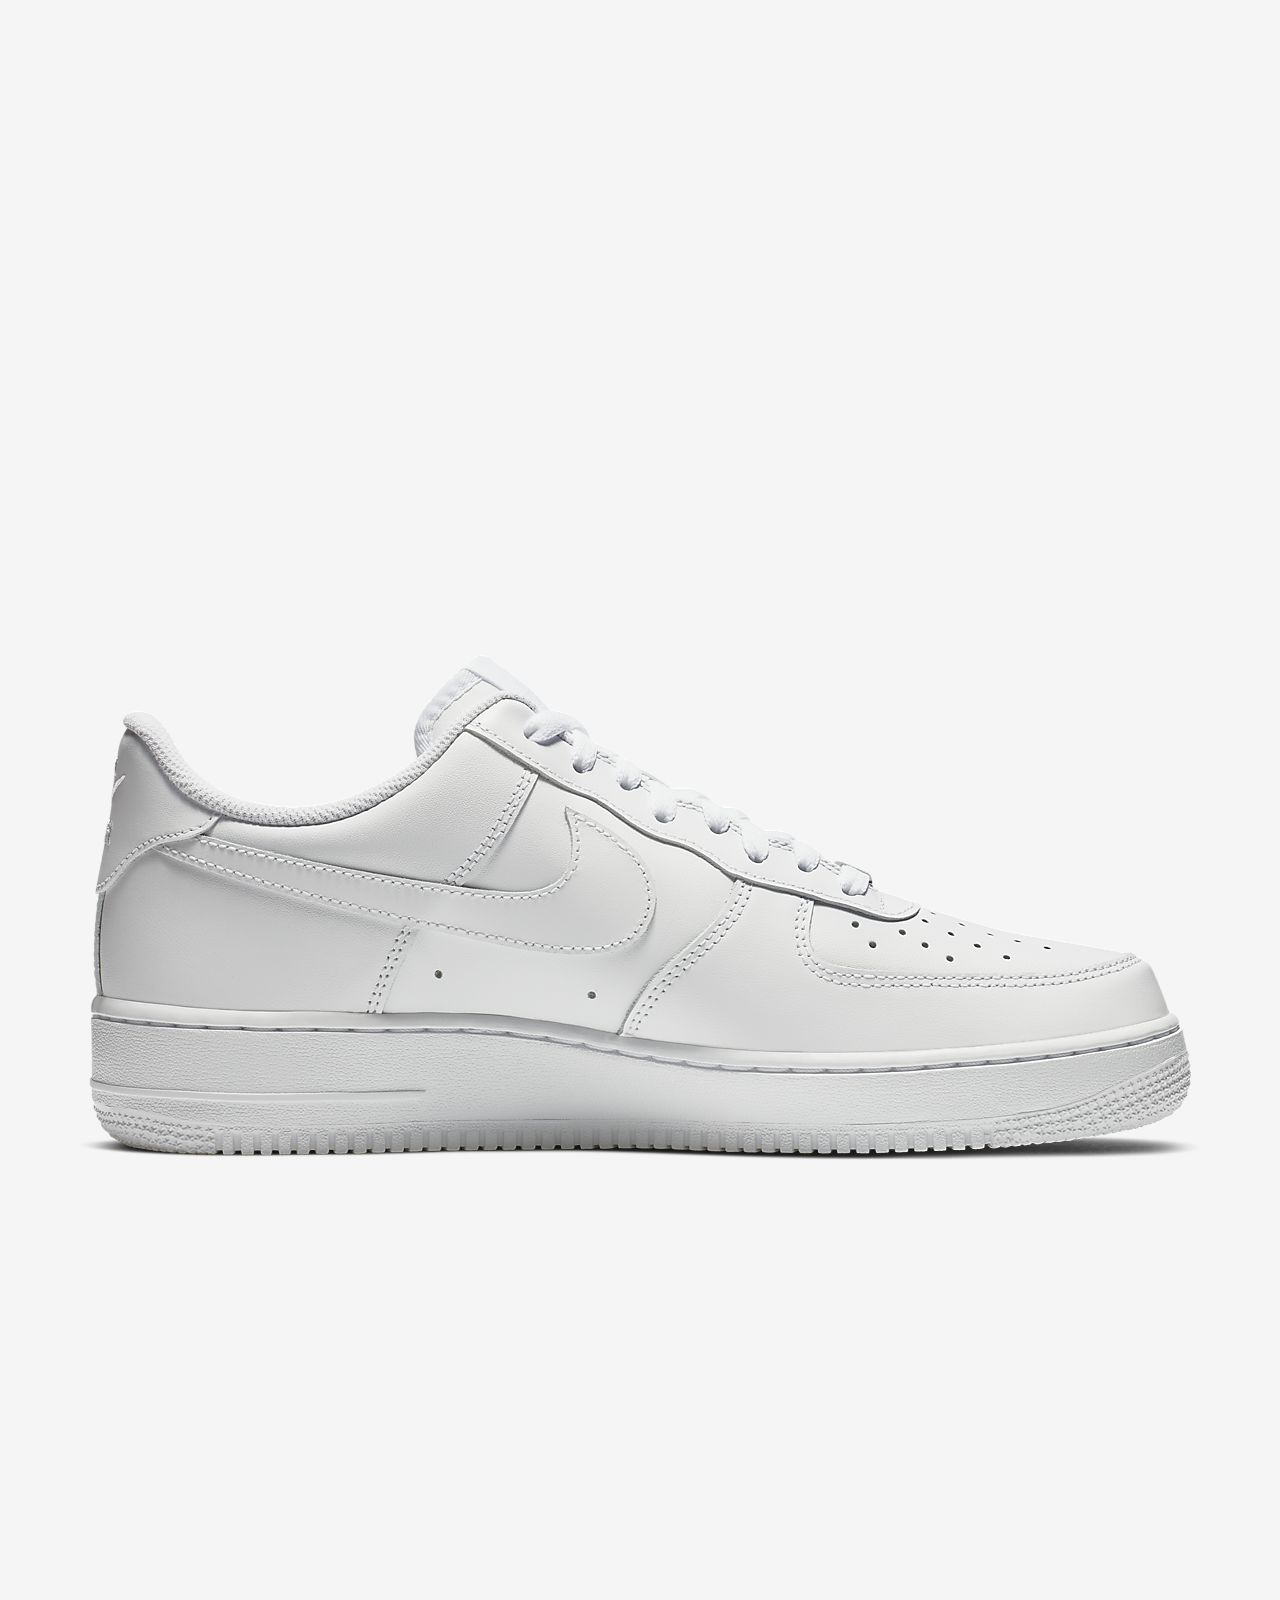 nike jordan air force 1 nz